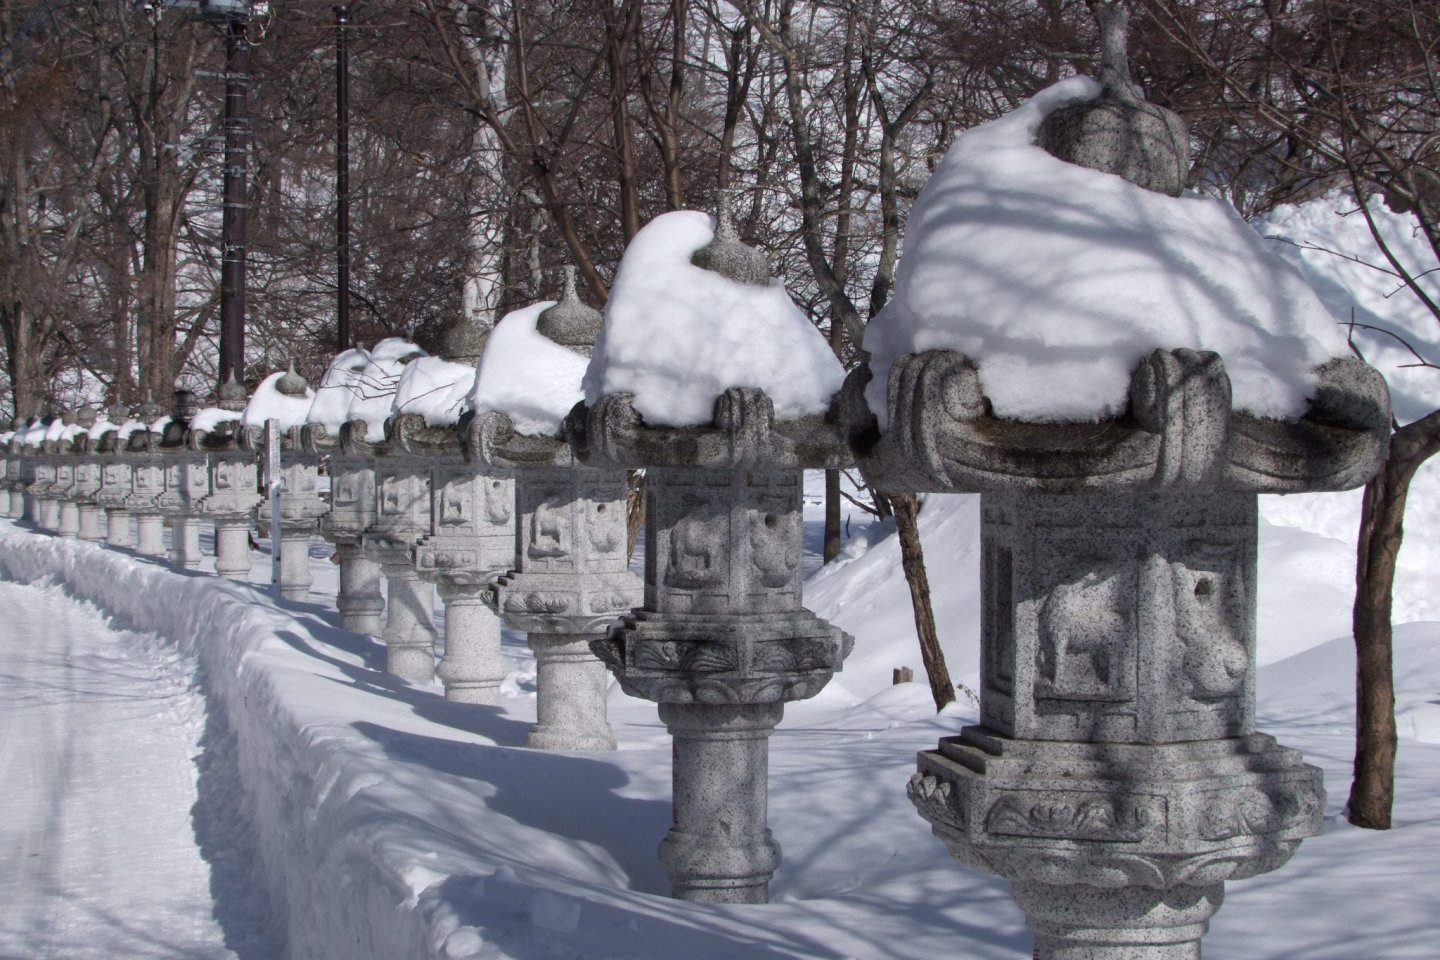 Lanterns poking out from the snow